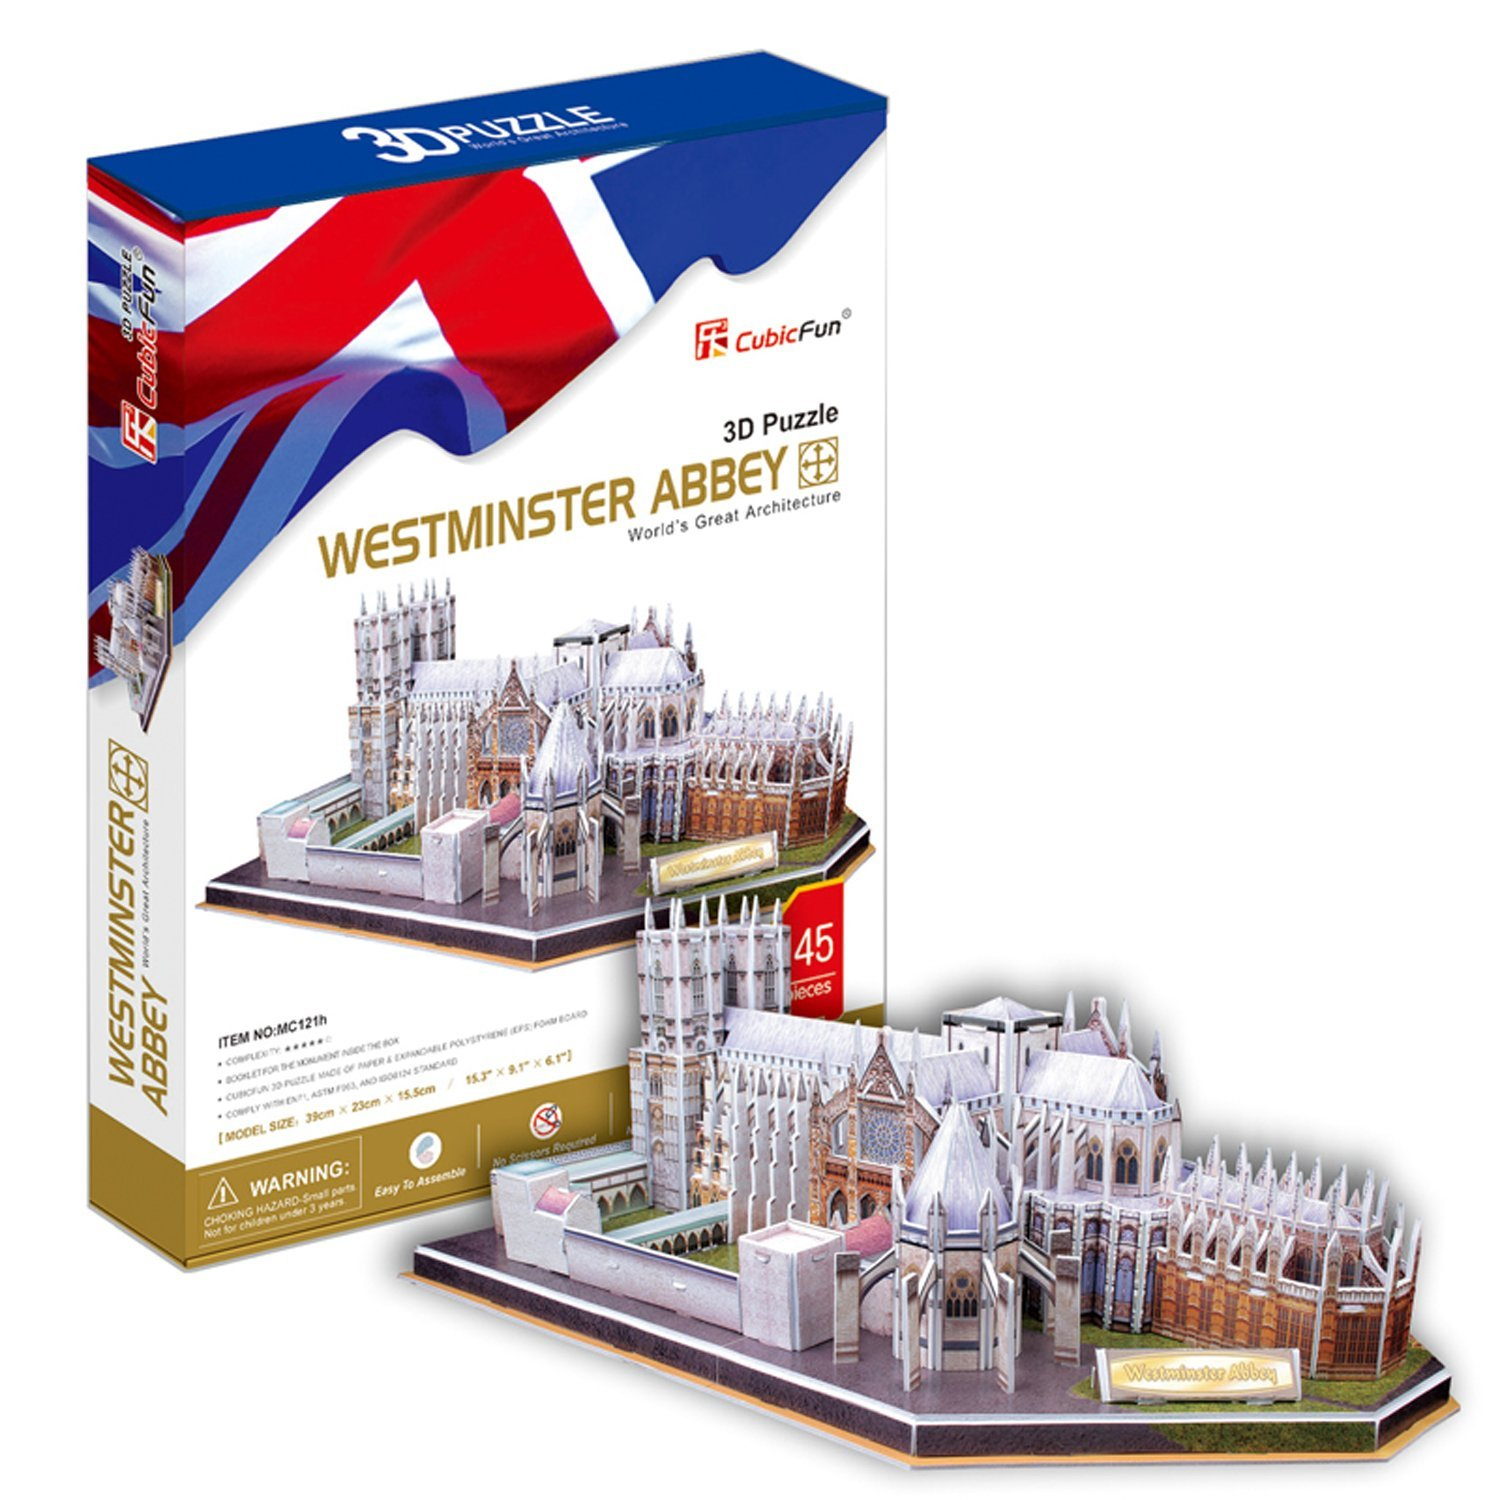 cubic-fun-puzzle-3d-westminster-abbey-london-145-teile-puzzle-cubic-fun-mc121h